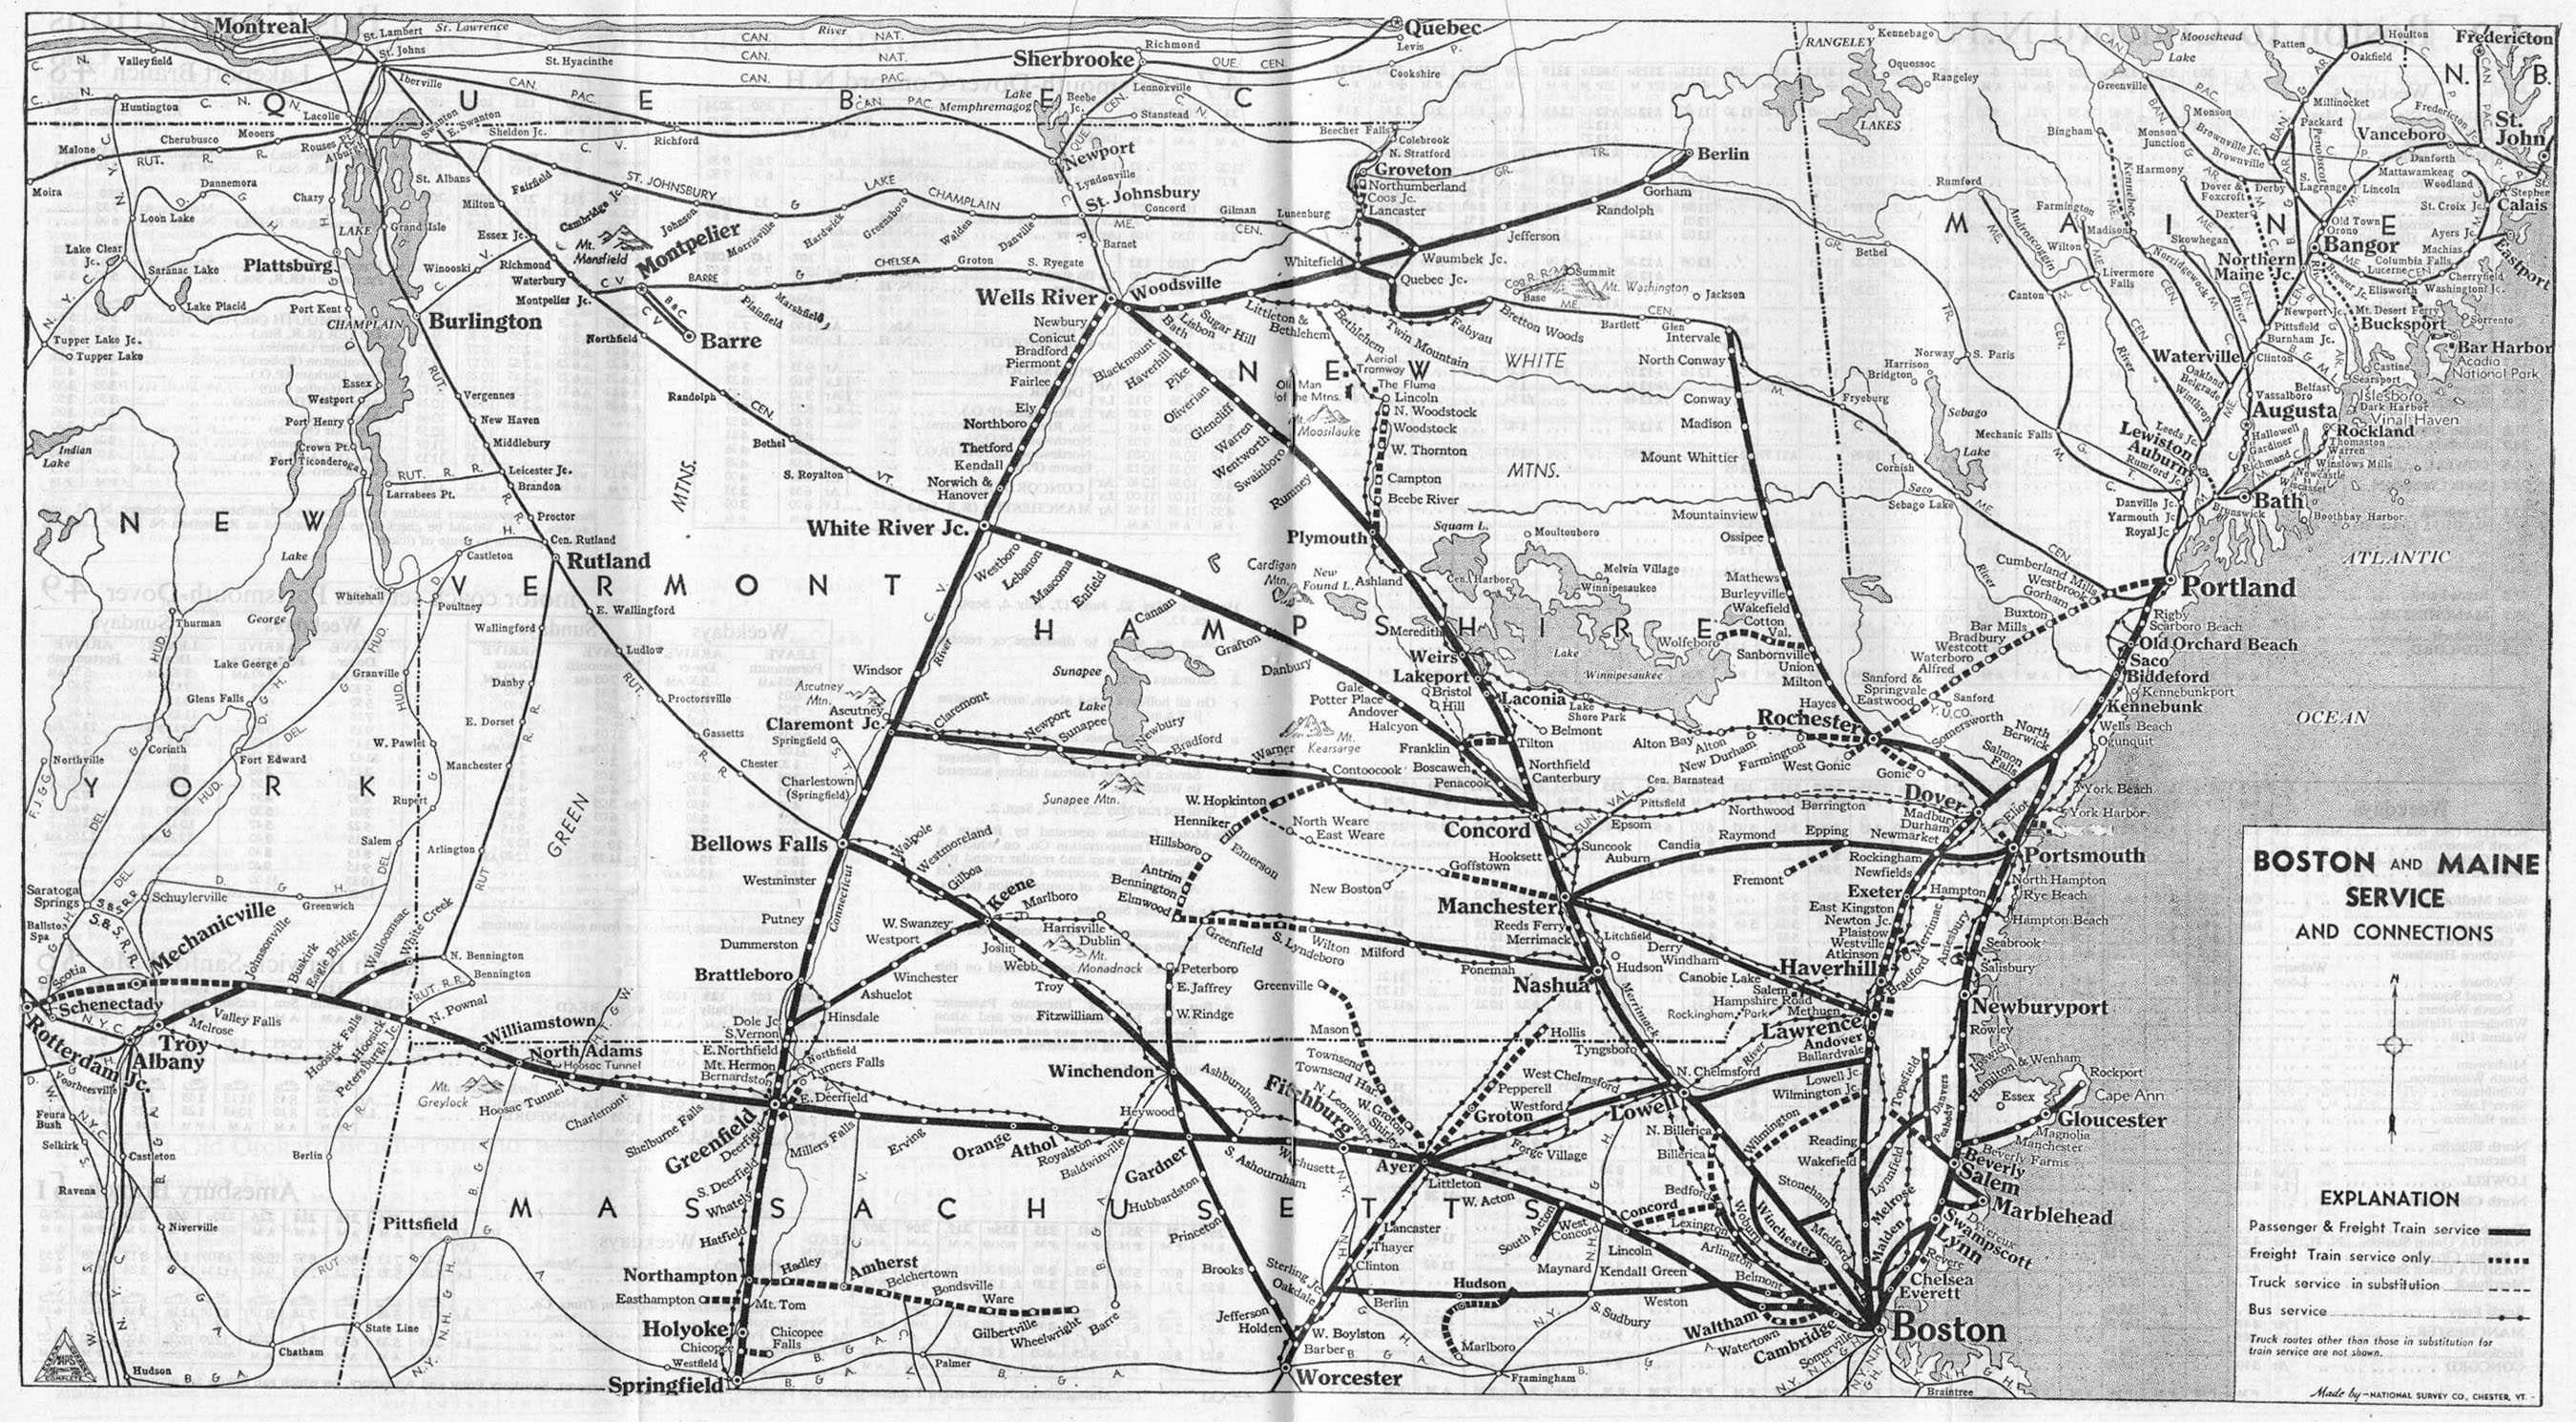 Boston and Maine Railroad, The B&M on map of arlington ma, map of harrisville nh, map of stewartstown nh, map of landaff nh, map of marlborough nh, map of concord nh, map of south hadley ma, map of worcester ma, map of framingham ma, map of methuen ma, map of rochester nh, map of epping nh, map of hillsboro nh, map of kingston nh, map of goshen nh, map of stratford nh, map of strafford nh, map of merrimack nh, map of newport nh, map of alton nh,